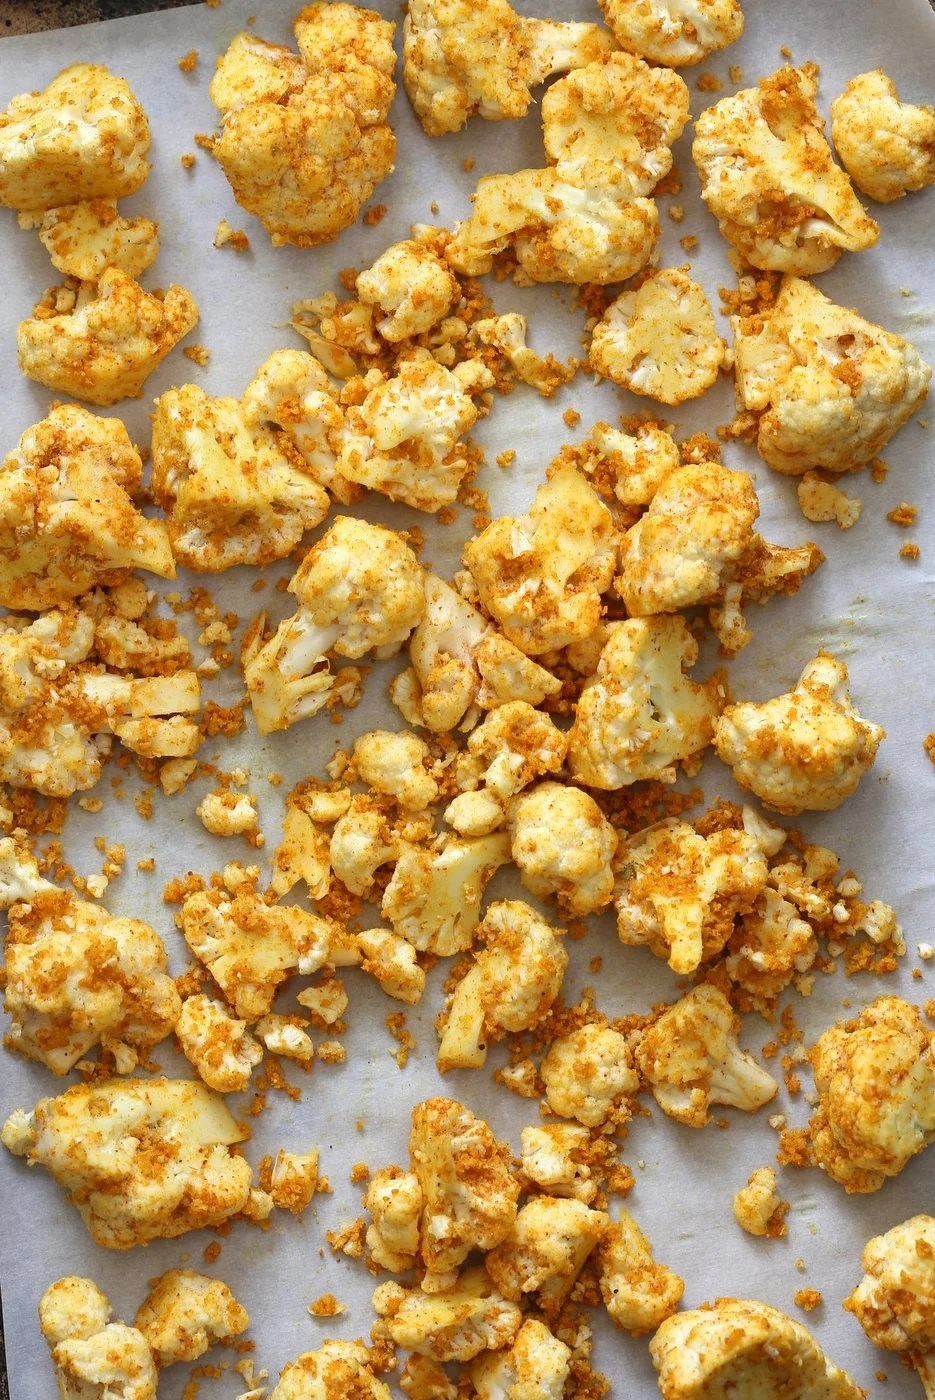 Roasted Cauliflower on Baking Sheet. Turmeric Roasted Cauliflower with Raita Dip. These Delicious Golden Cauliflower Bites are easy and quick. Serve with a dash of lemon or with a Yogurt onion dip or Green Chutney. #Vegan #Soyfree #Nutfree #veganricha #Recipe. Can be #glutenfree